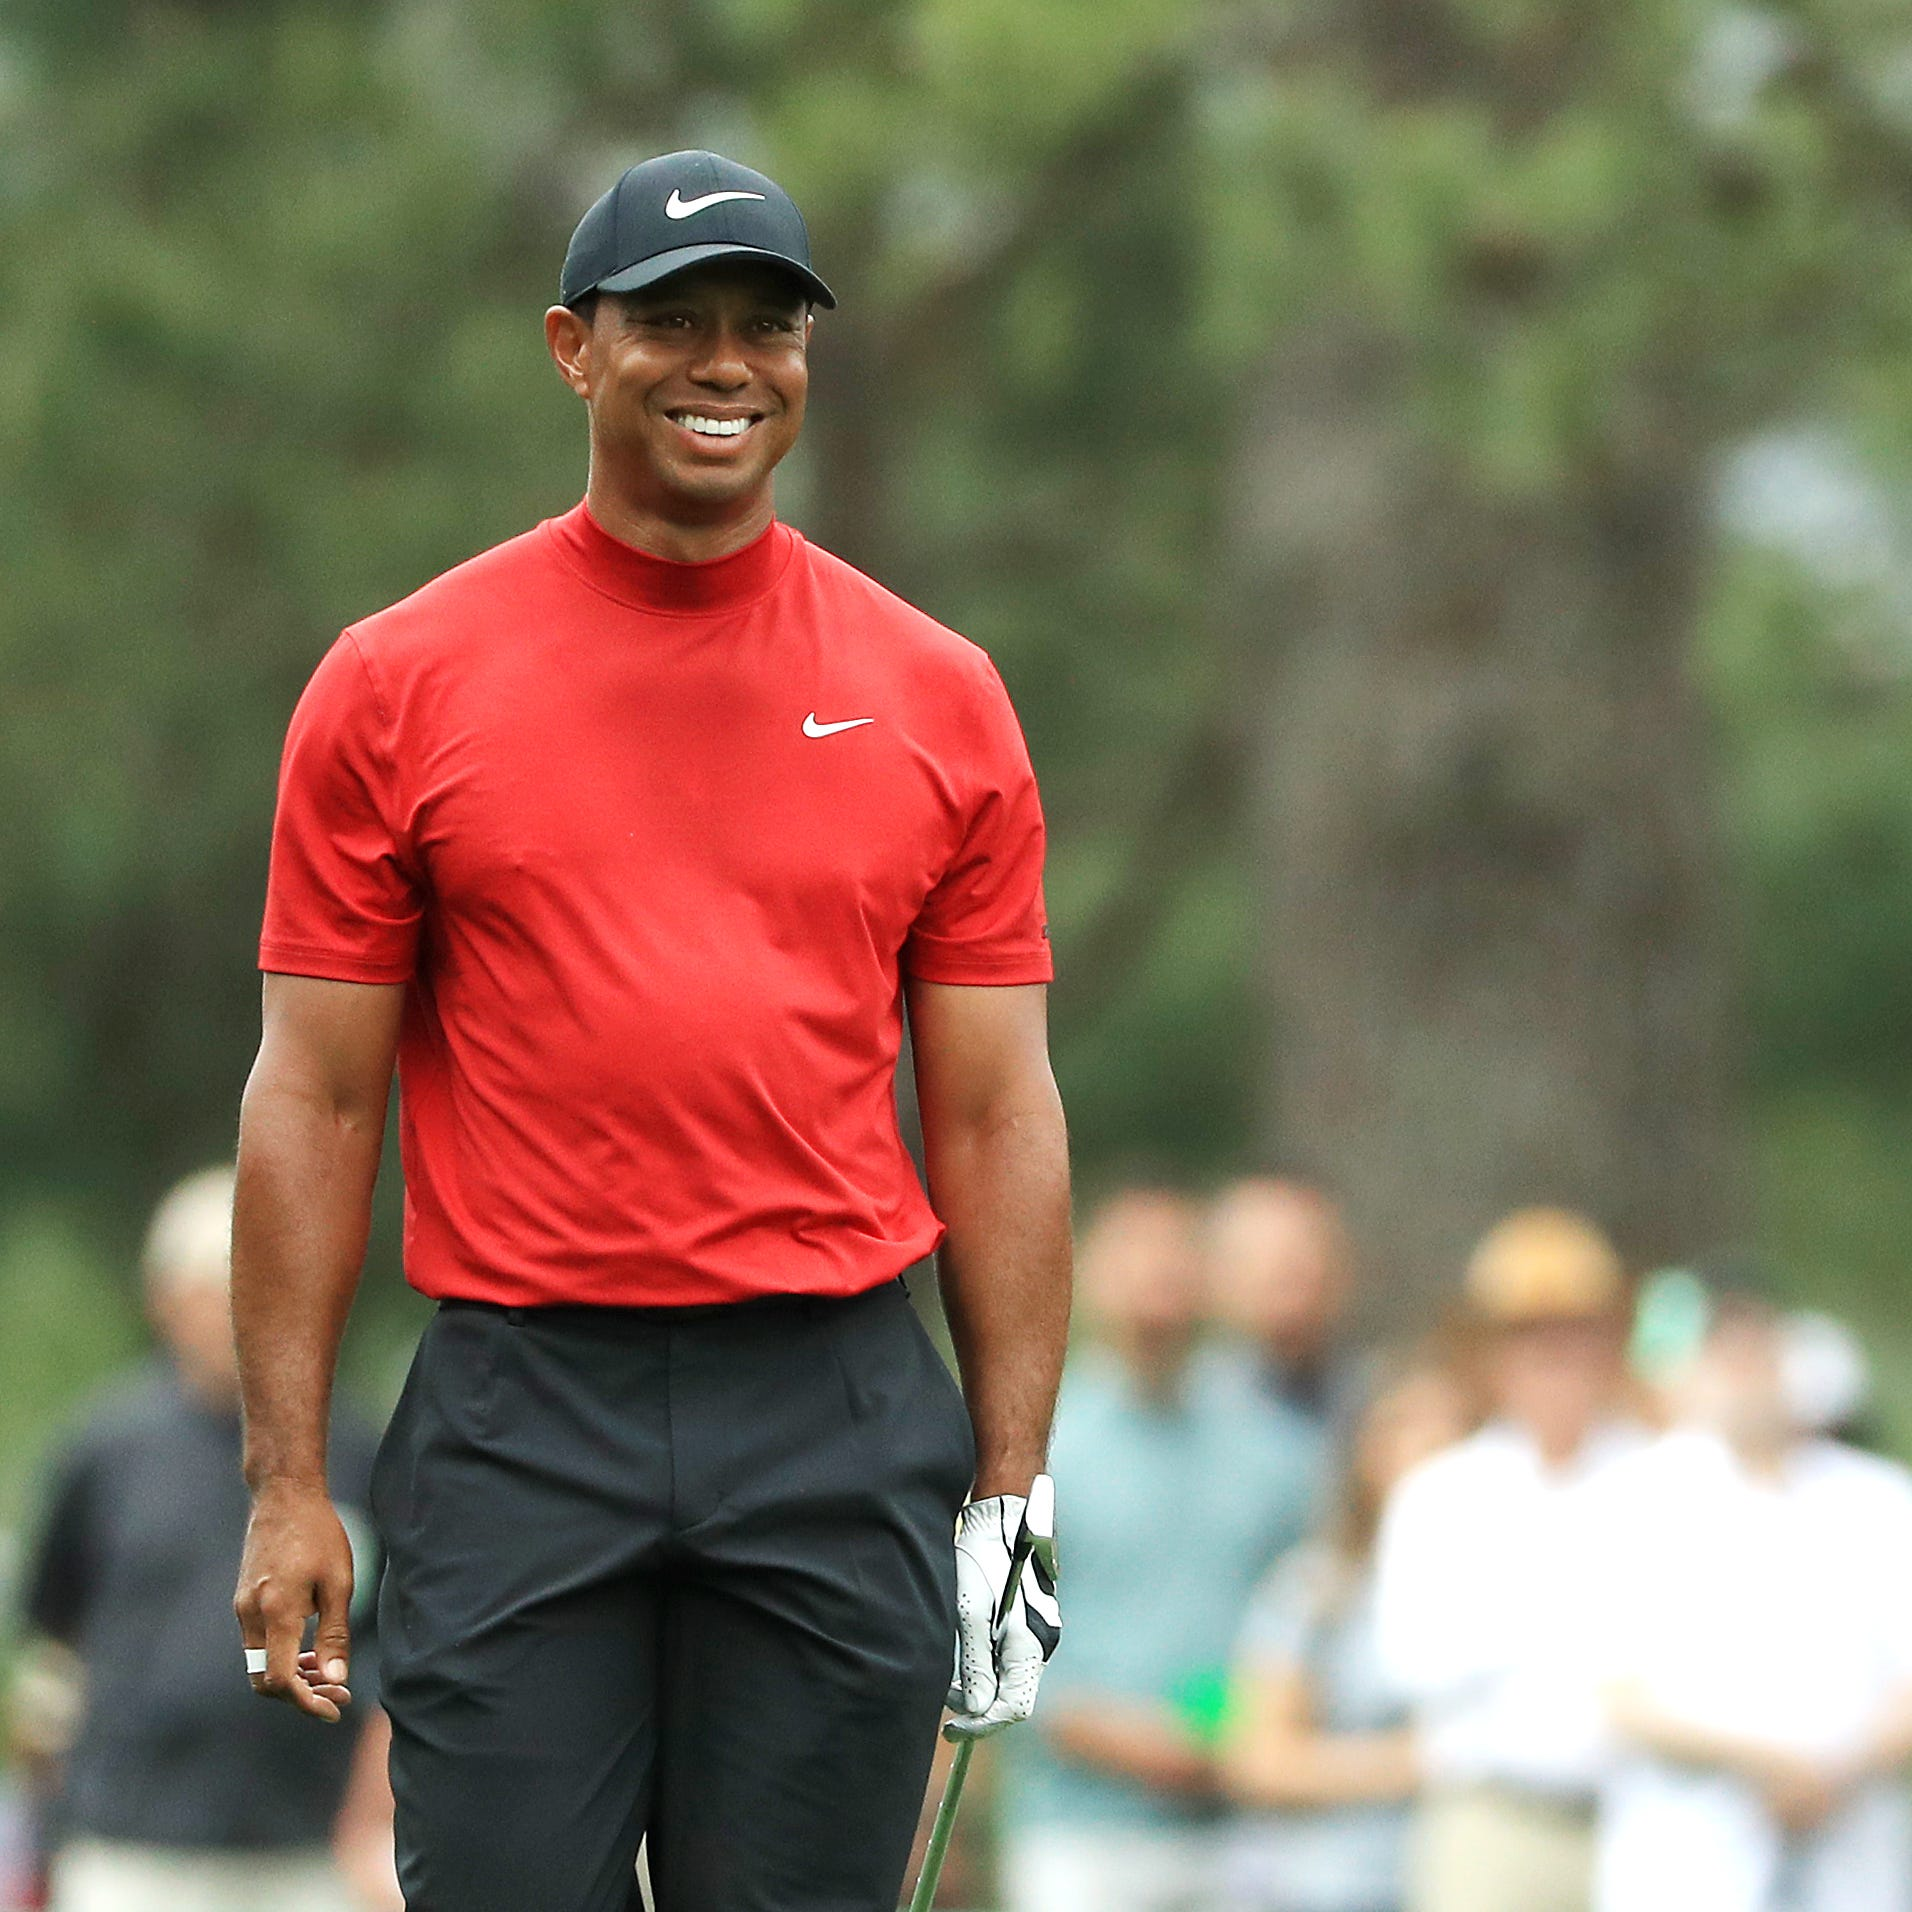 He's back! Tiger Woods wins 2019 Masters, 15th major to complete epic comeback